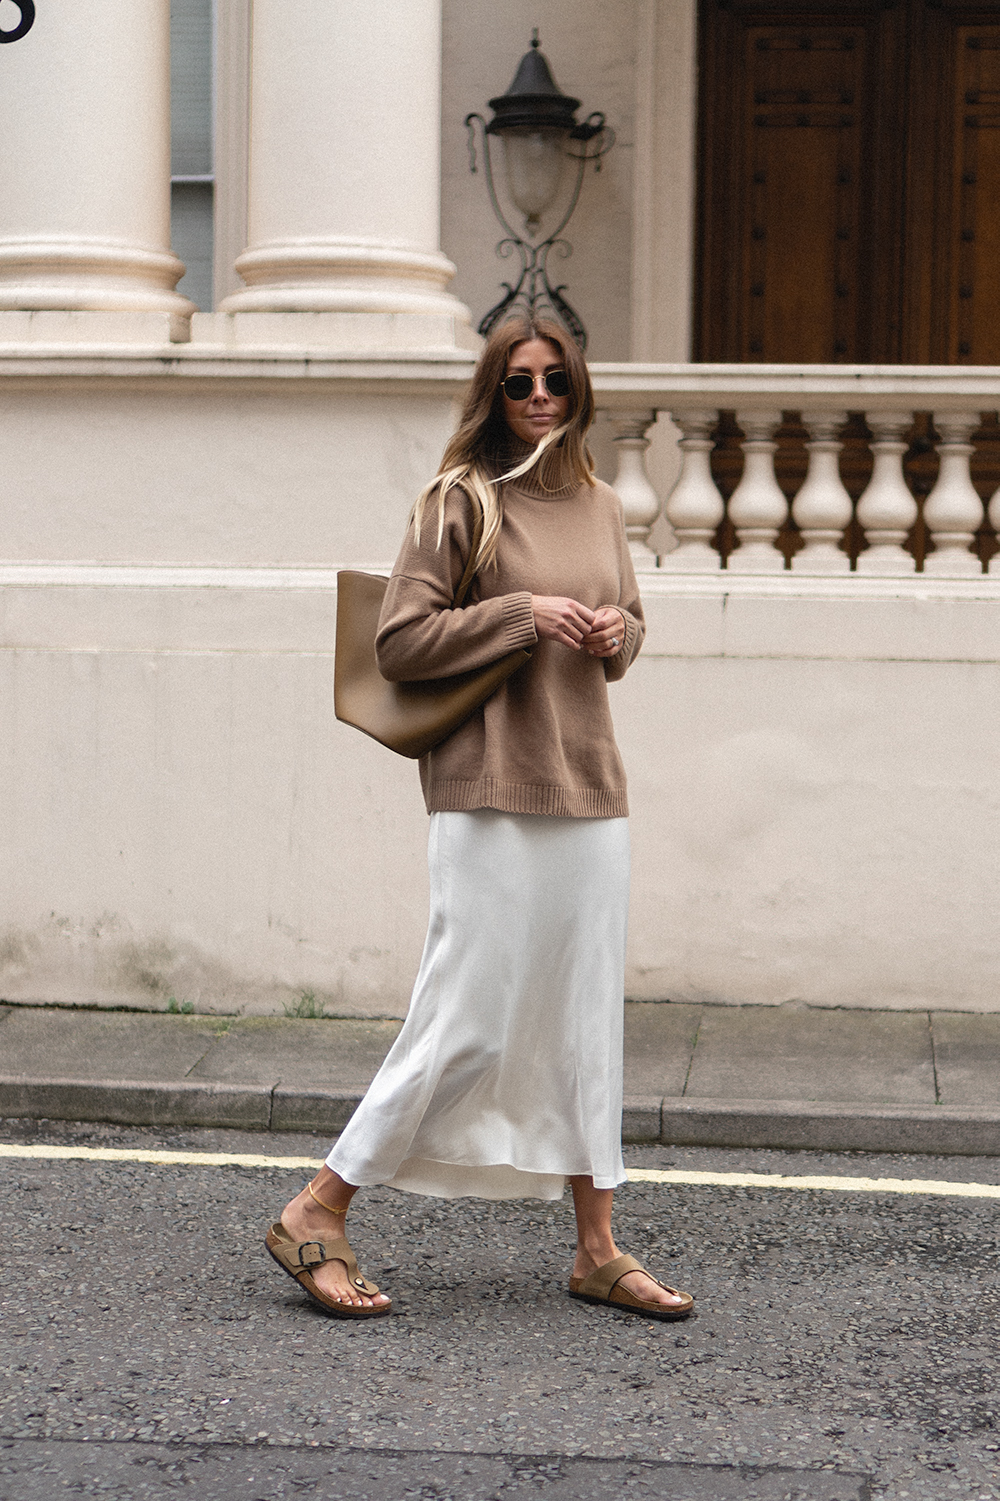 Cozy-Chic Fall Outfit Idea from Birtish Influencer Emma Hill in a Neutral Turtleneck Sweater, Minimalist Tote Bag, White Slip Skirt, and Tan Birkenstock Sandals